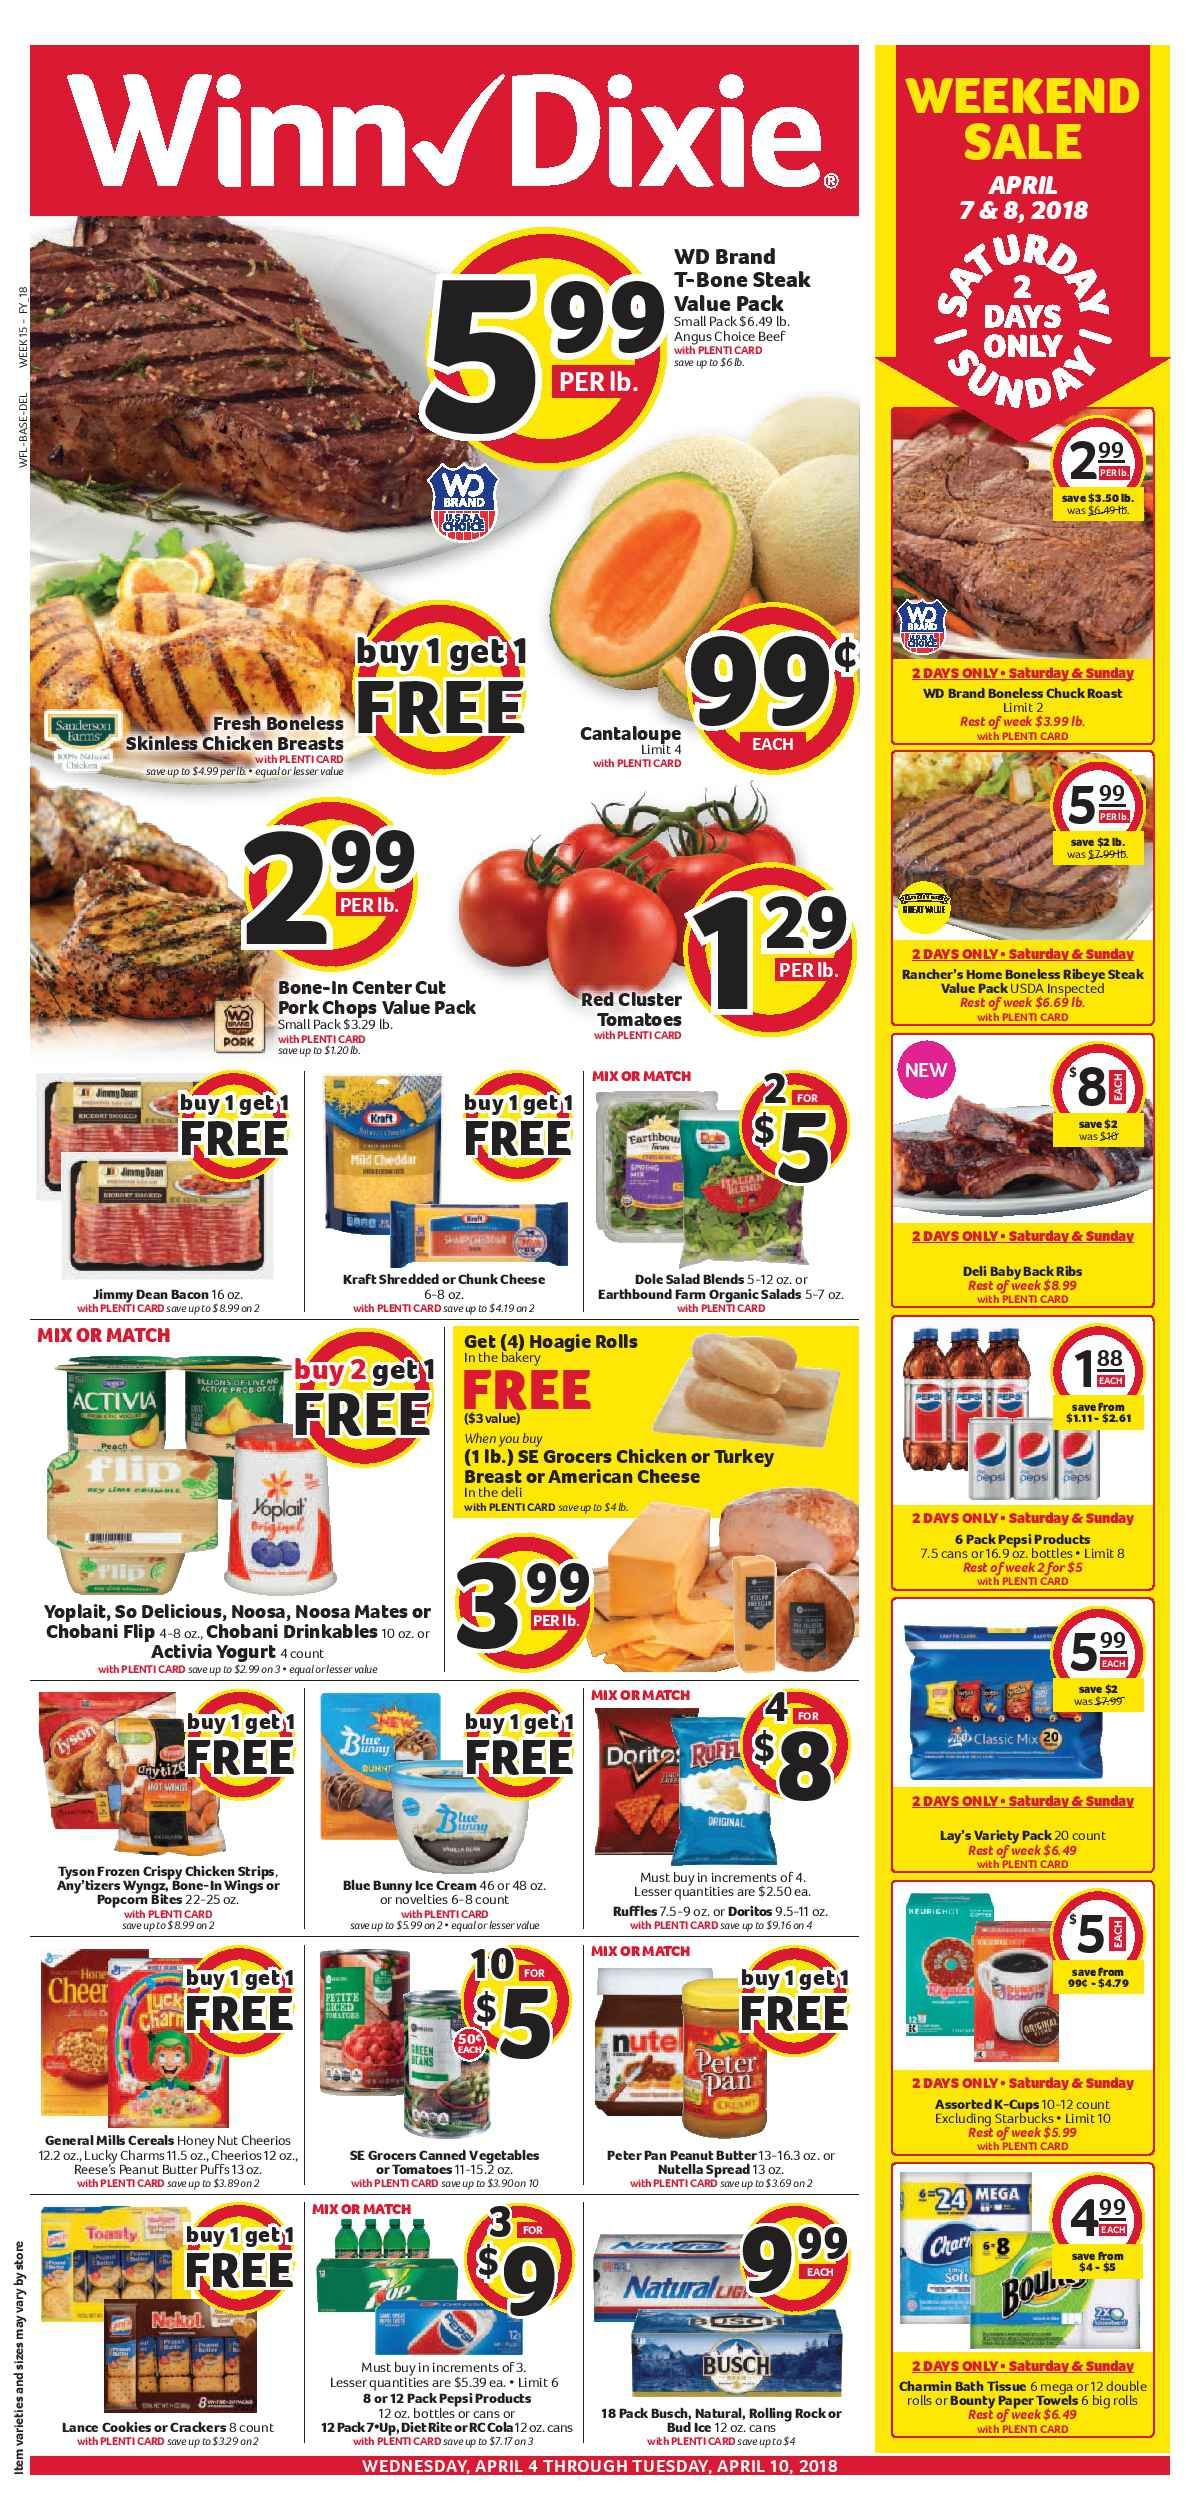 Winn Dixie Weekly ad Flyer March 28   April 3, 2018 | Weekly ads